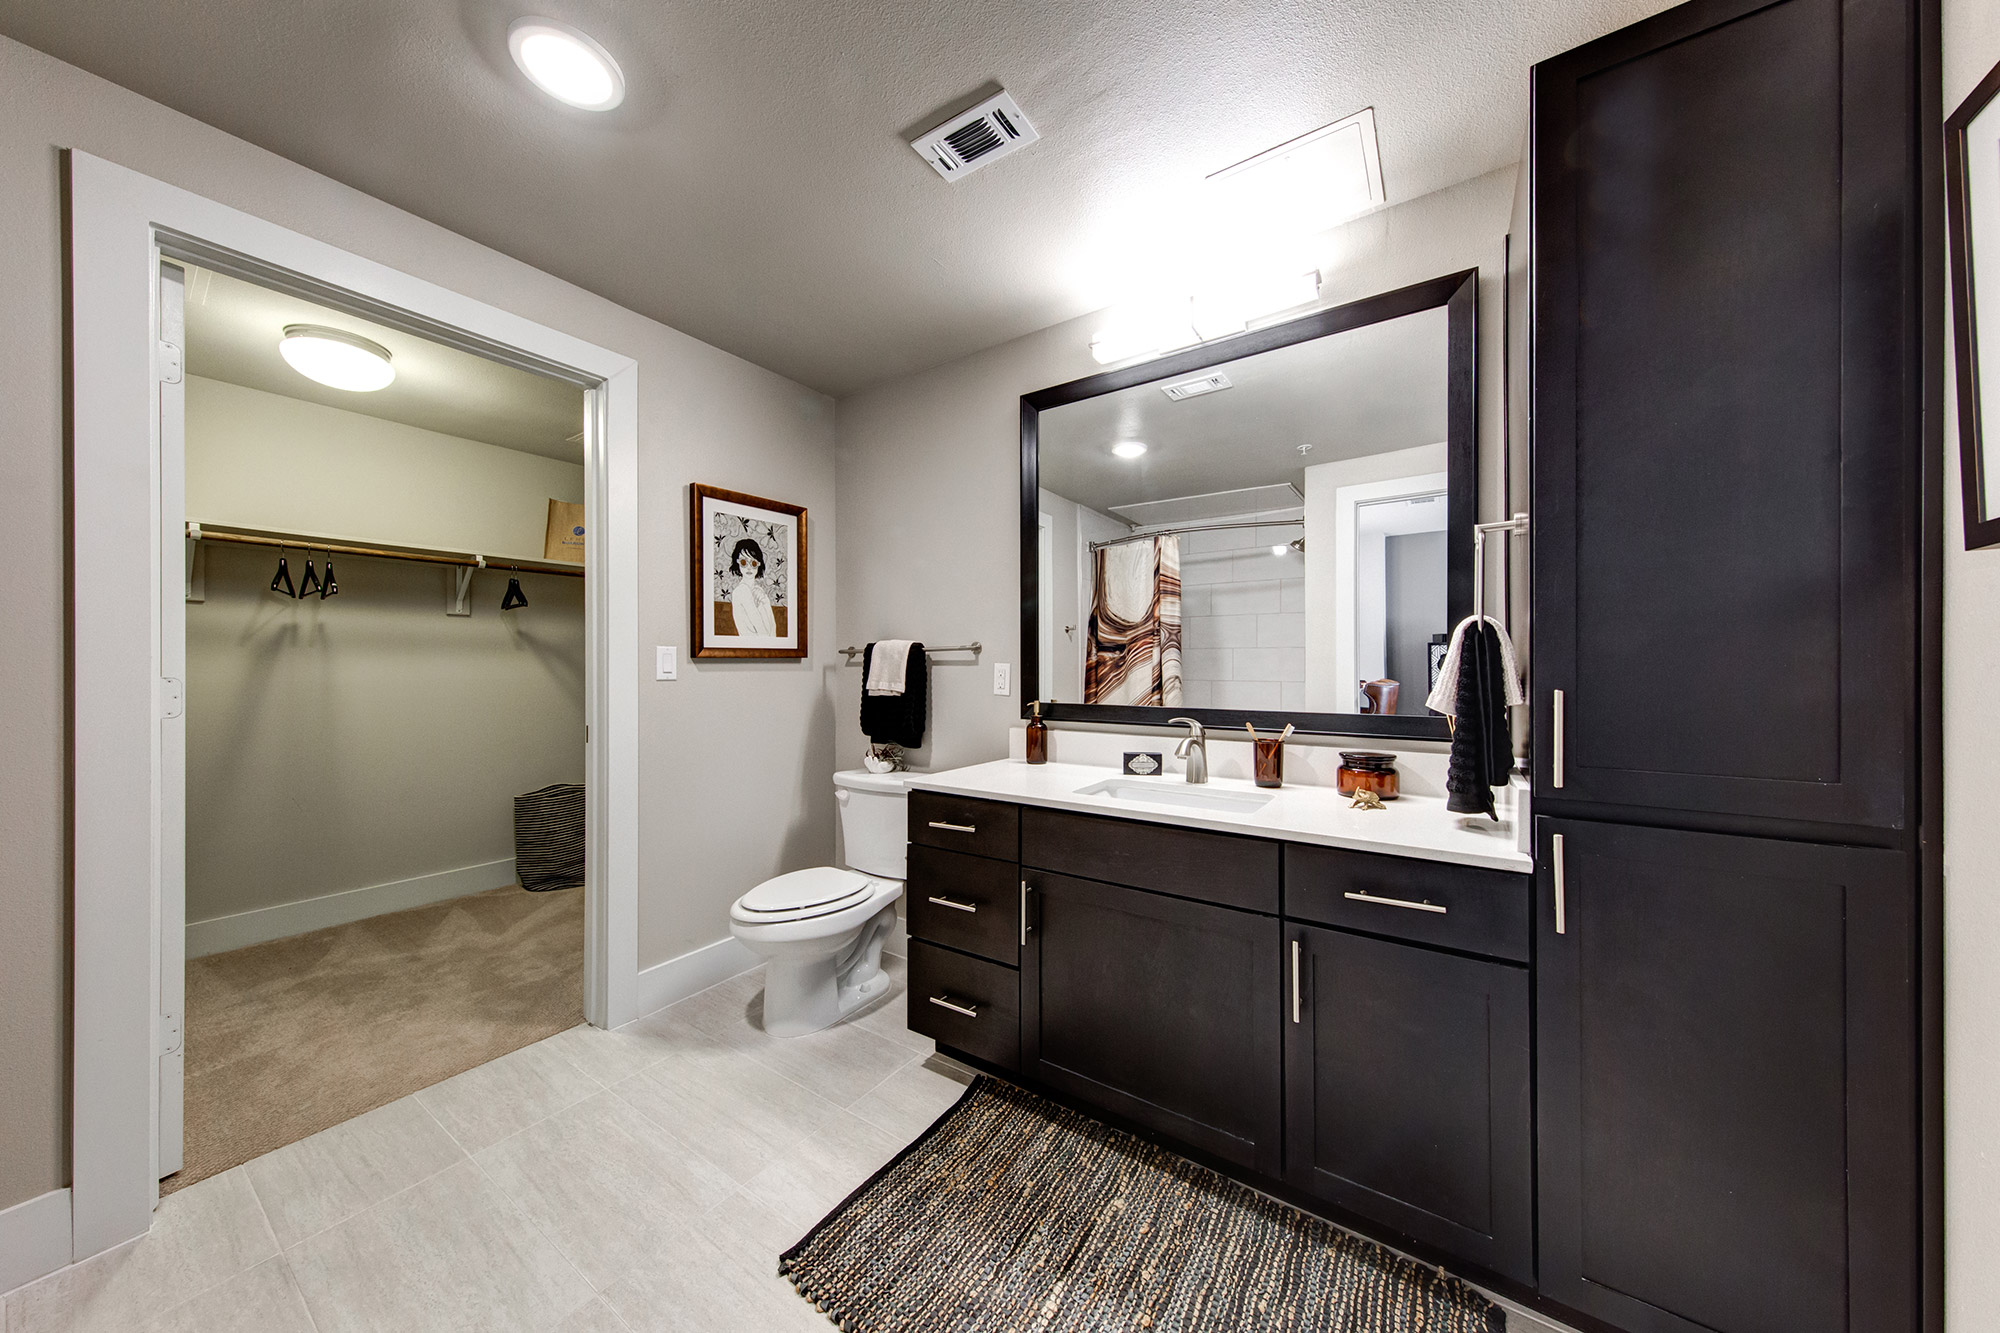 Bathroom with quartz counters, walk-in closet, and black cabinetry